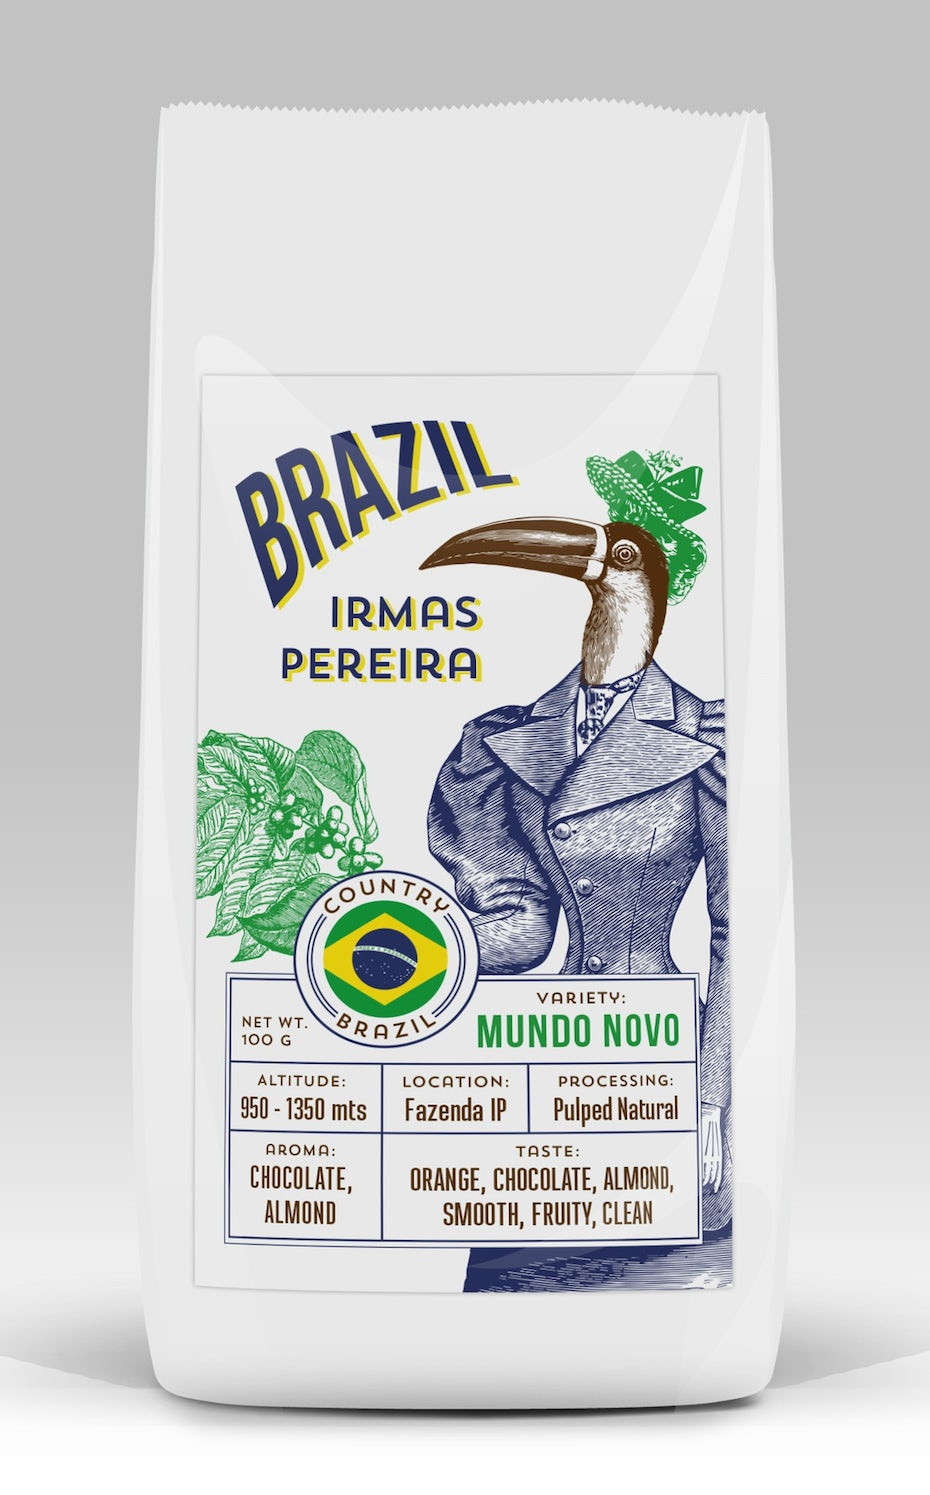 Packaging design trends 2020 example: Metamorphoses Brazilian coffee label